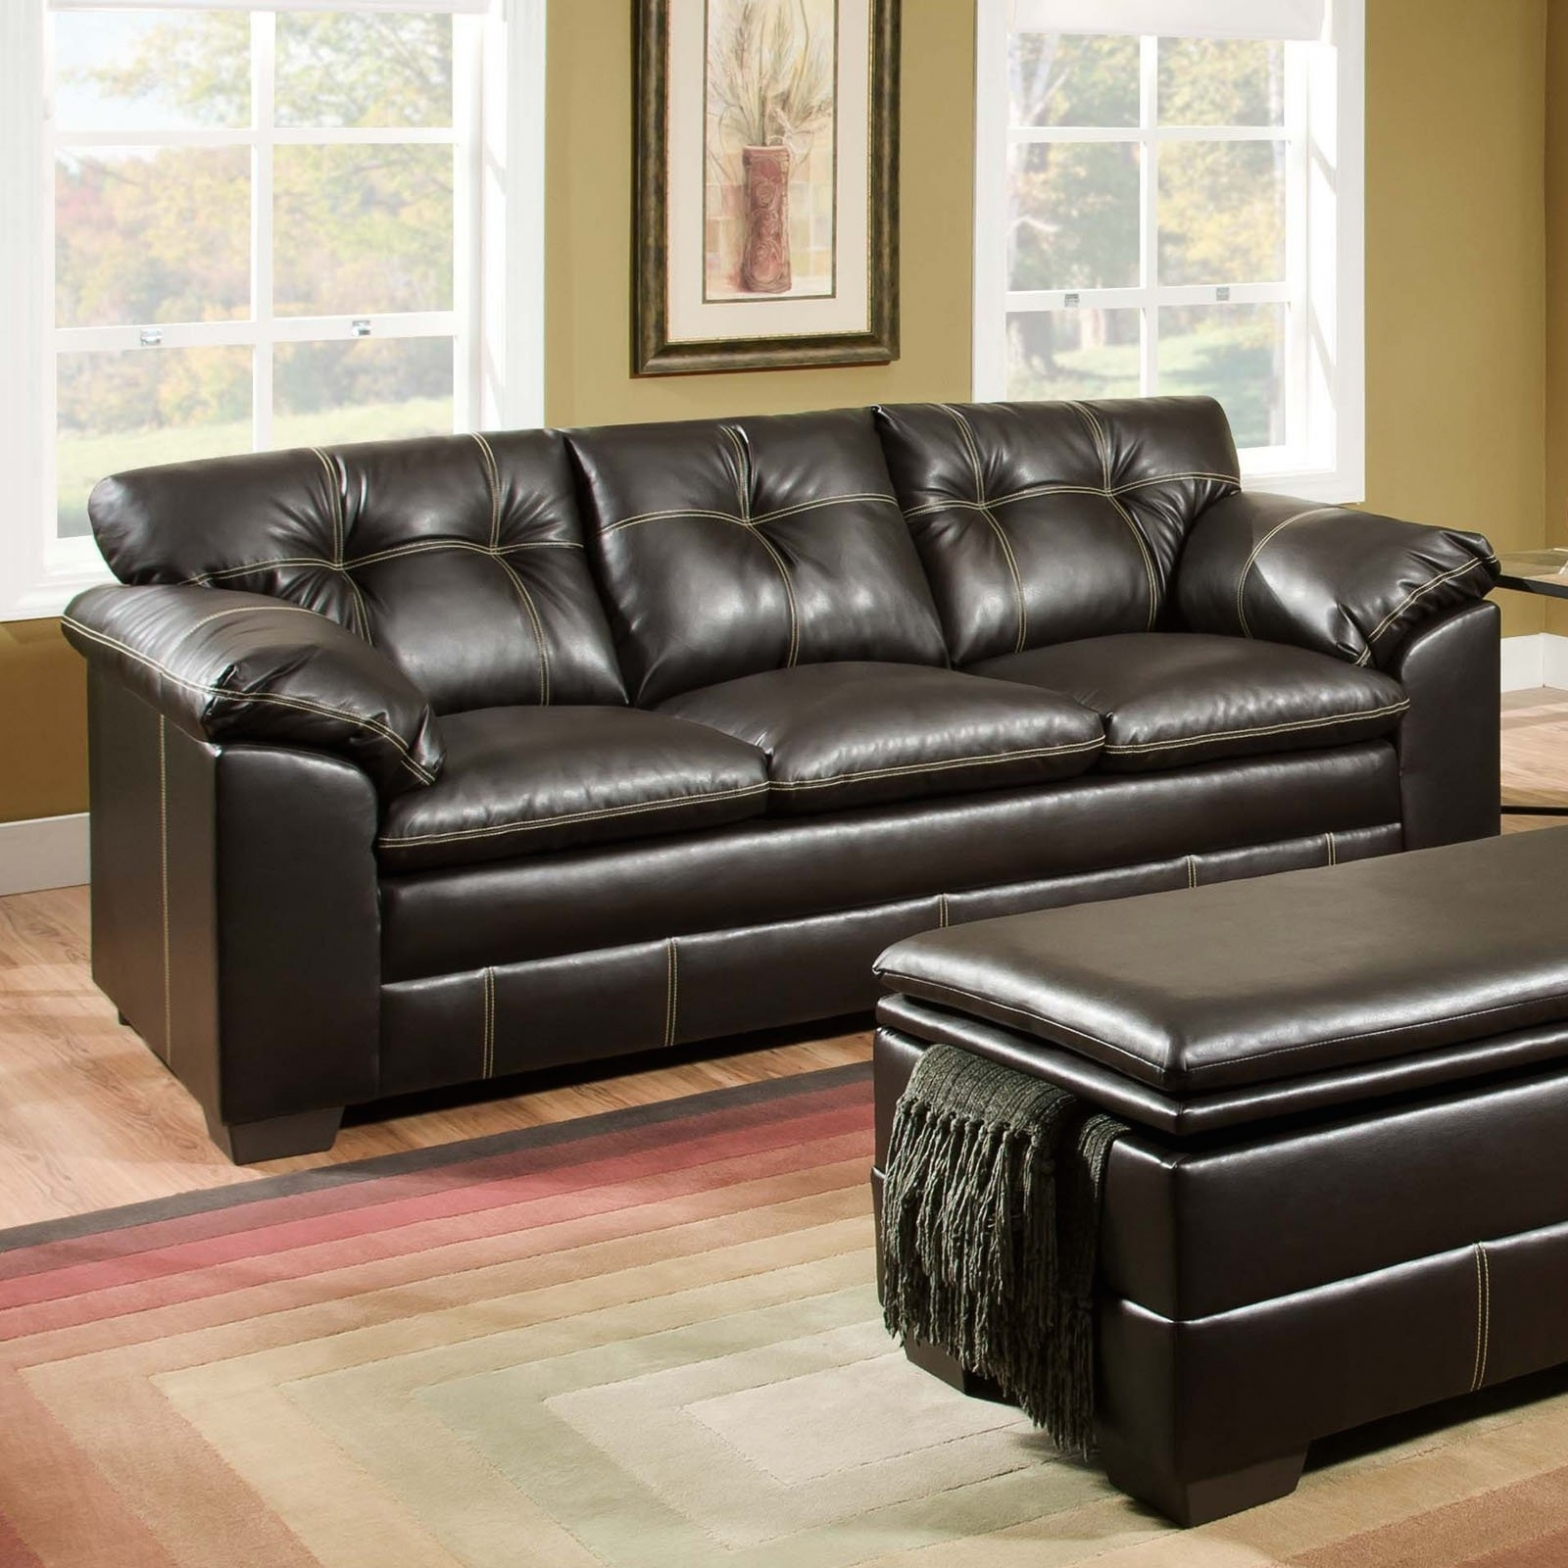 Sectional Sofas At Big Lots In Newest Furniture: Sofas : Fabulous Leather Loveseat Recliner Sectional (View 8 of 15)